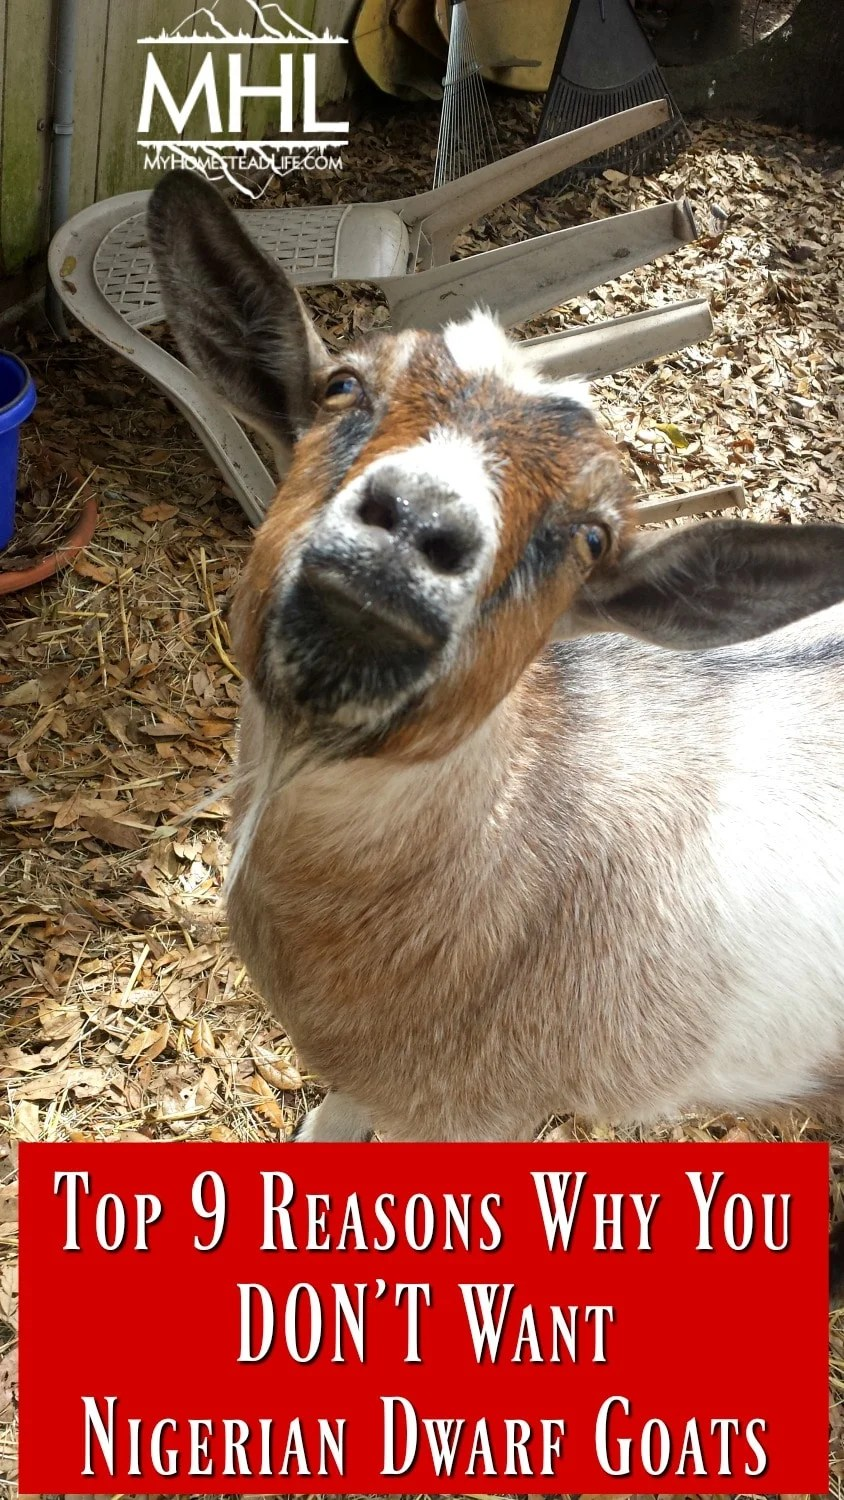 Top 9 reasons why you don't want Nigerian Dwarf Goats.